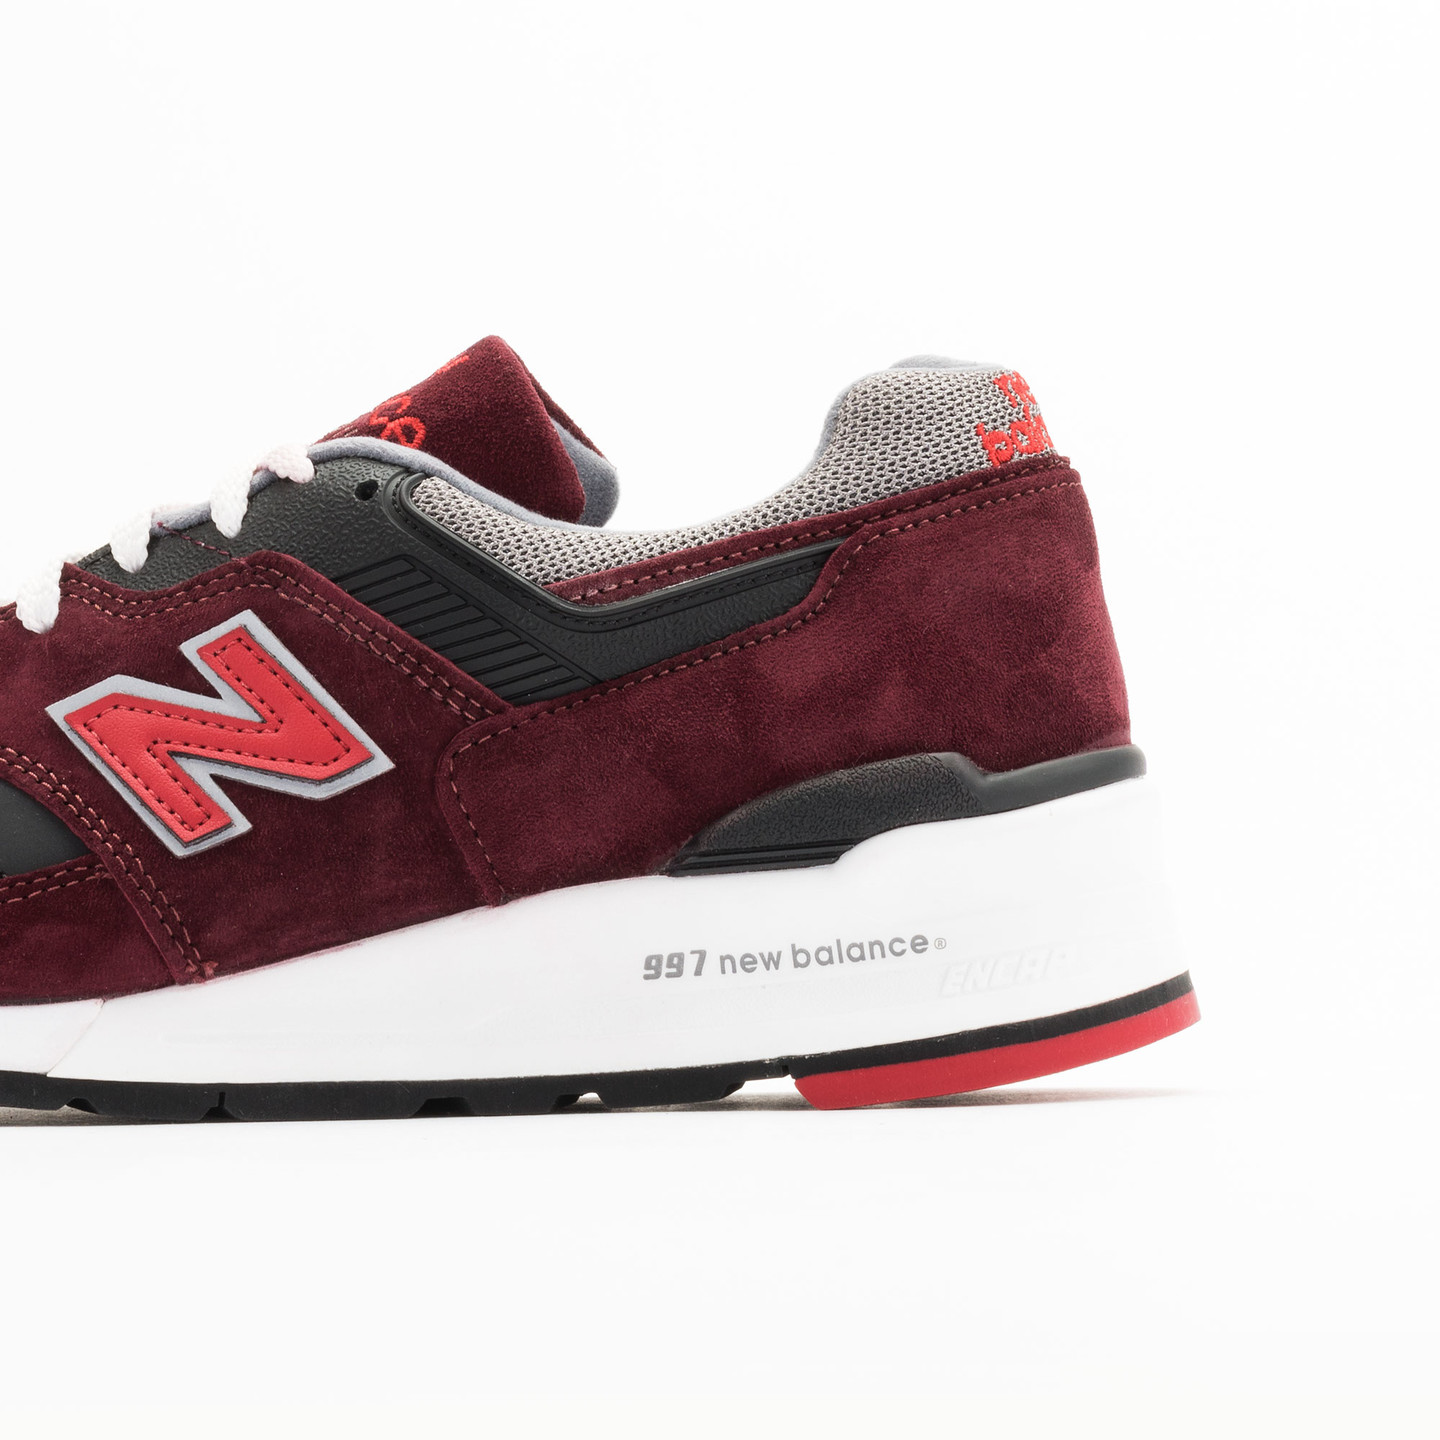 New Balance M997 CRG - Made in USA Brick Red / Black / Grey M997CRG-42